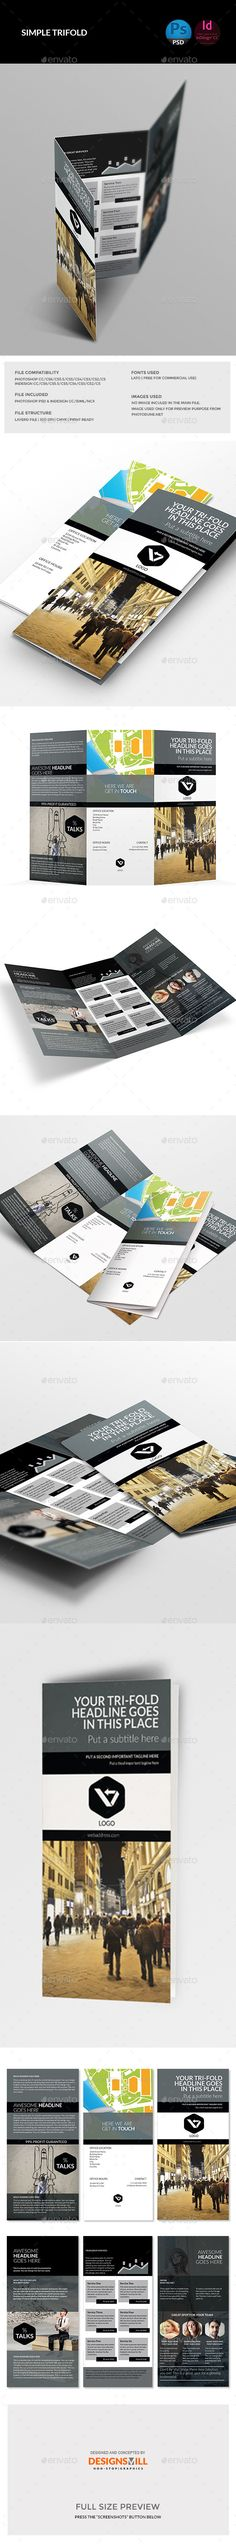 Tri-Fold Brochure Template. Download: http://graphicriver.net/item/trifold-brochure/11263526?ref=ksioks